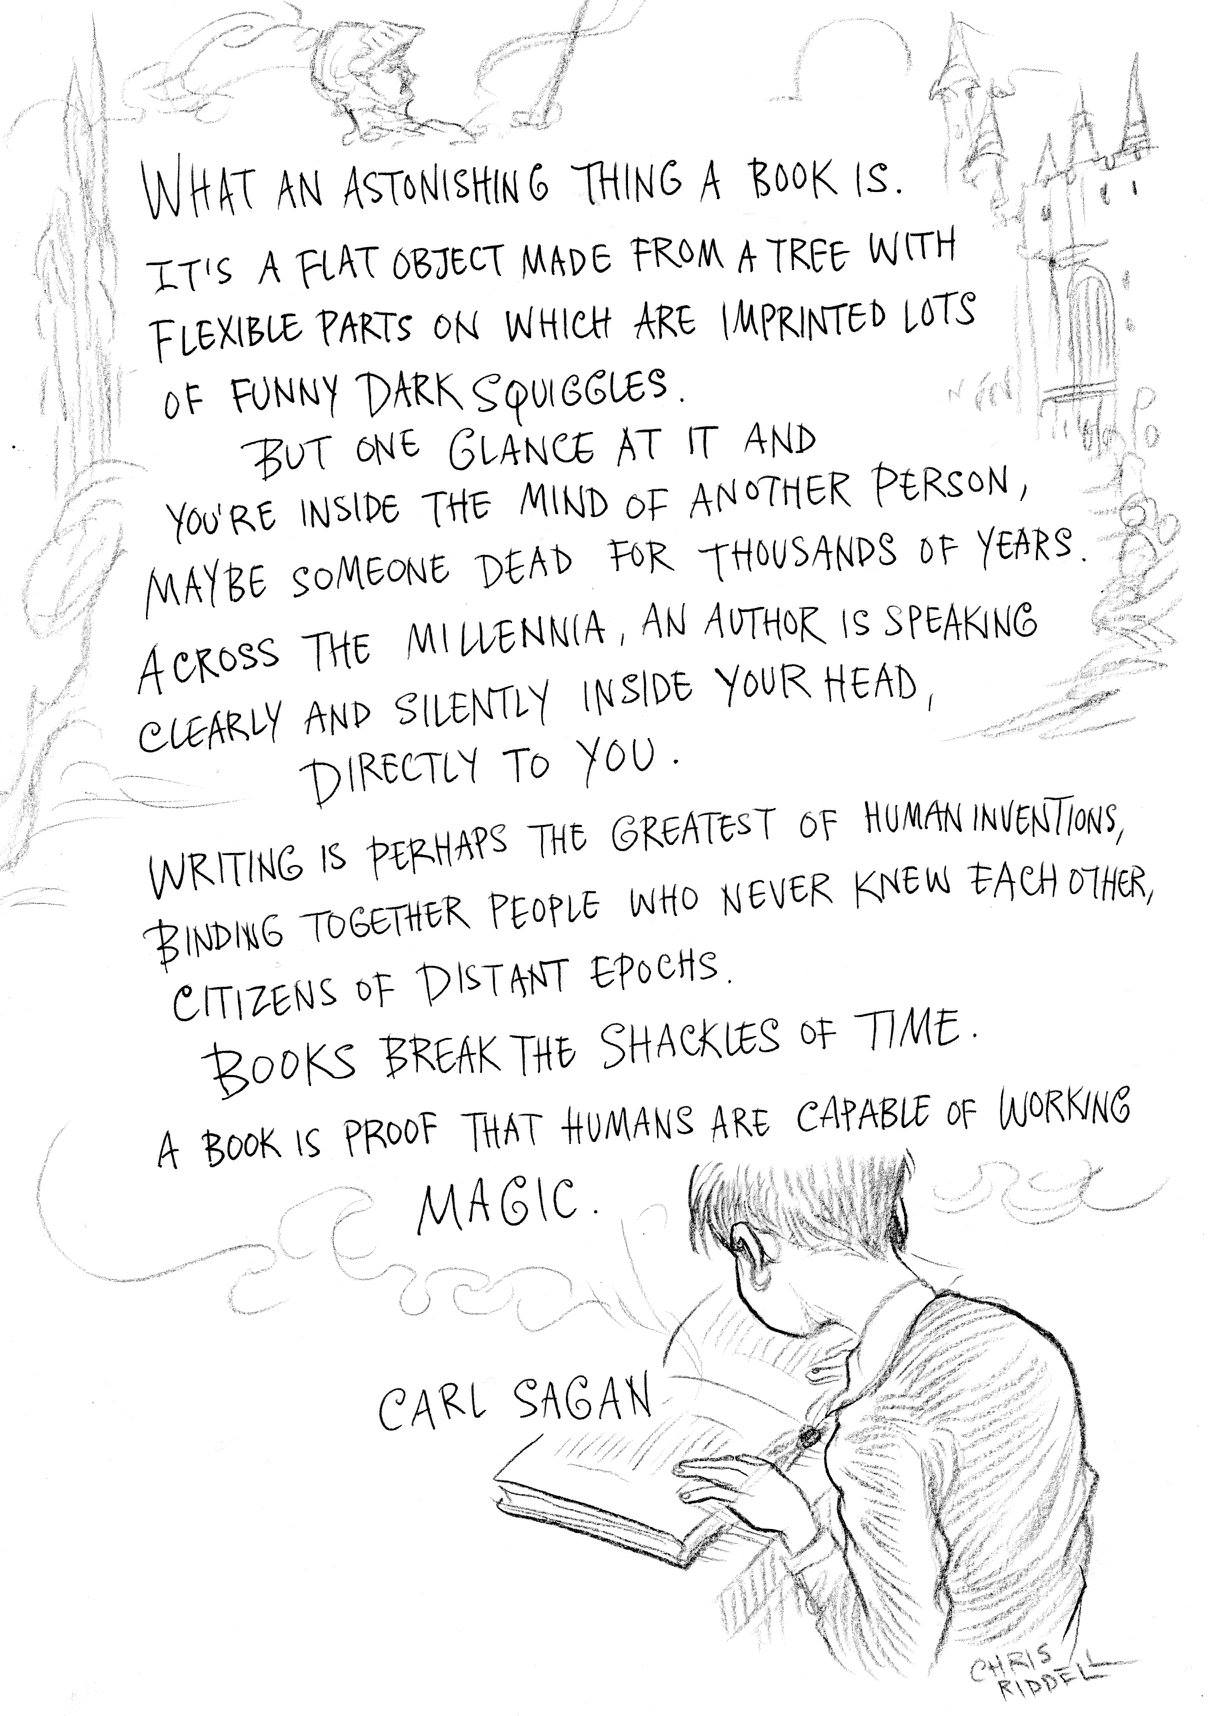 "Kristin Holt | Carl Sagan : ""What an astonishing thing a book is!... A book is  proof that humans are capable of working magic."""